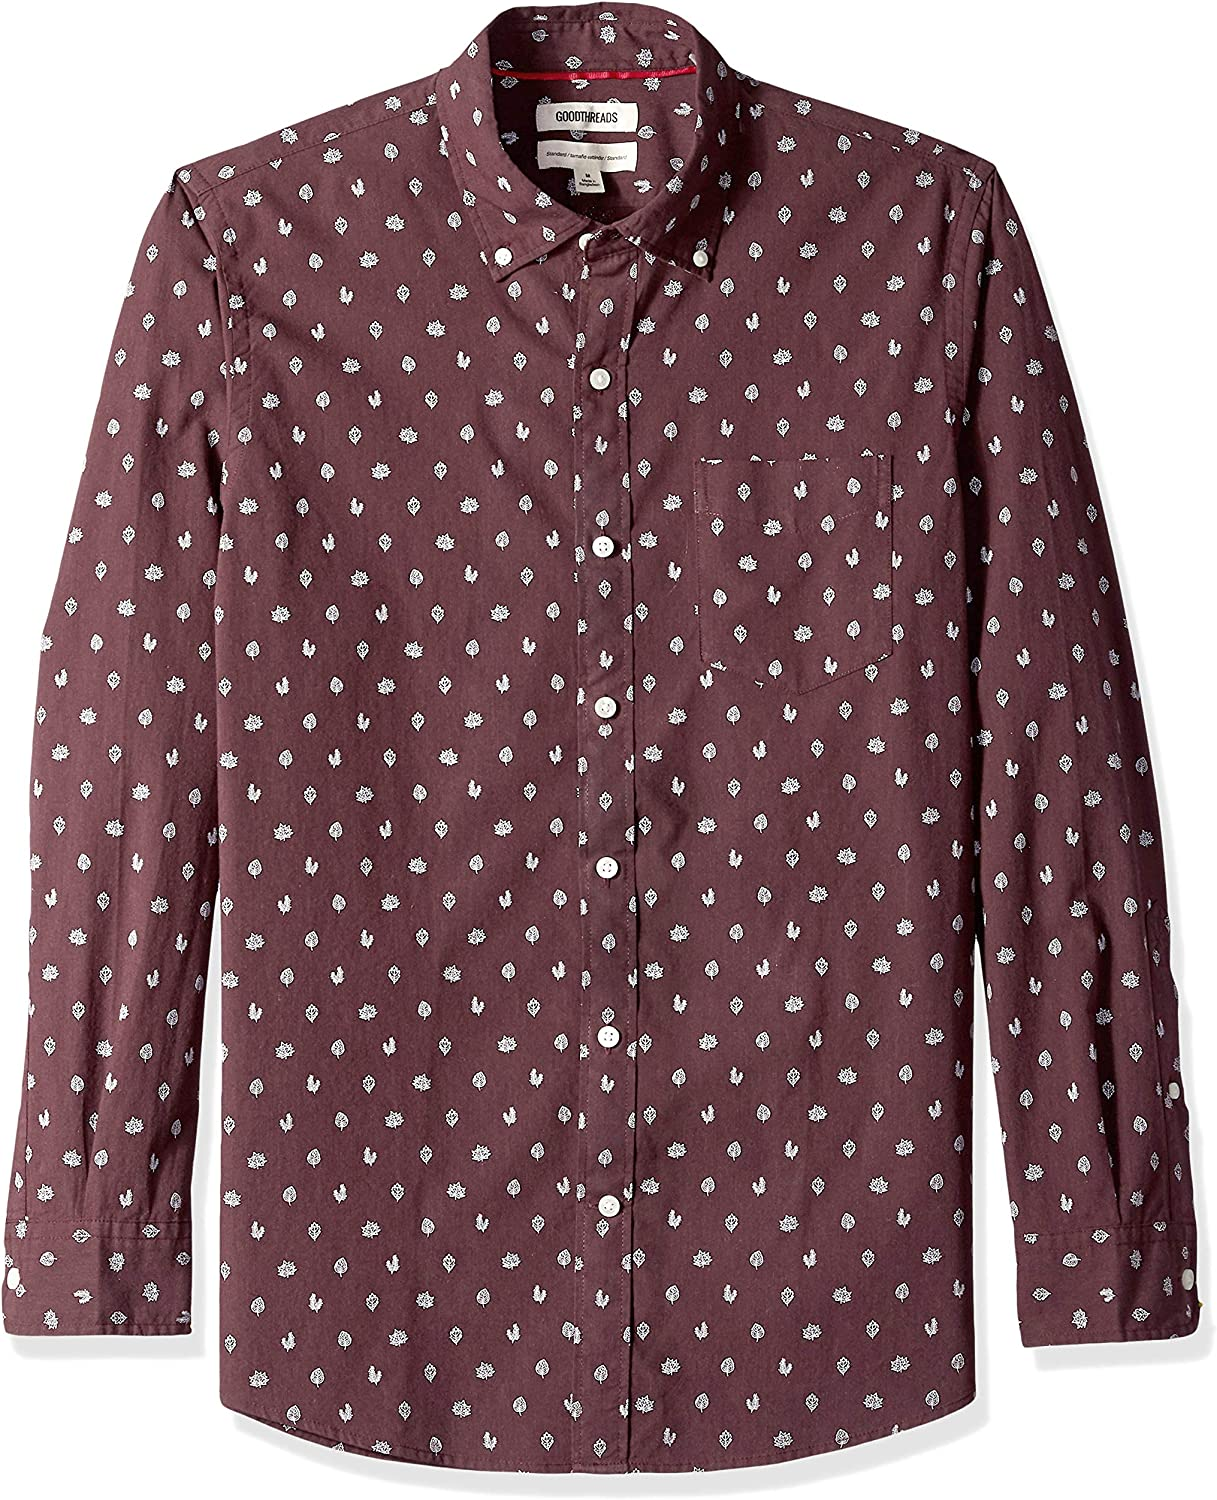 Brand Goodthreads Mens Standard-Fit Long-Sleeve Printed Poplin Shirt